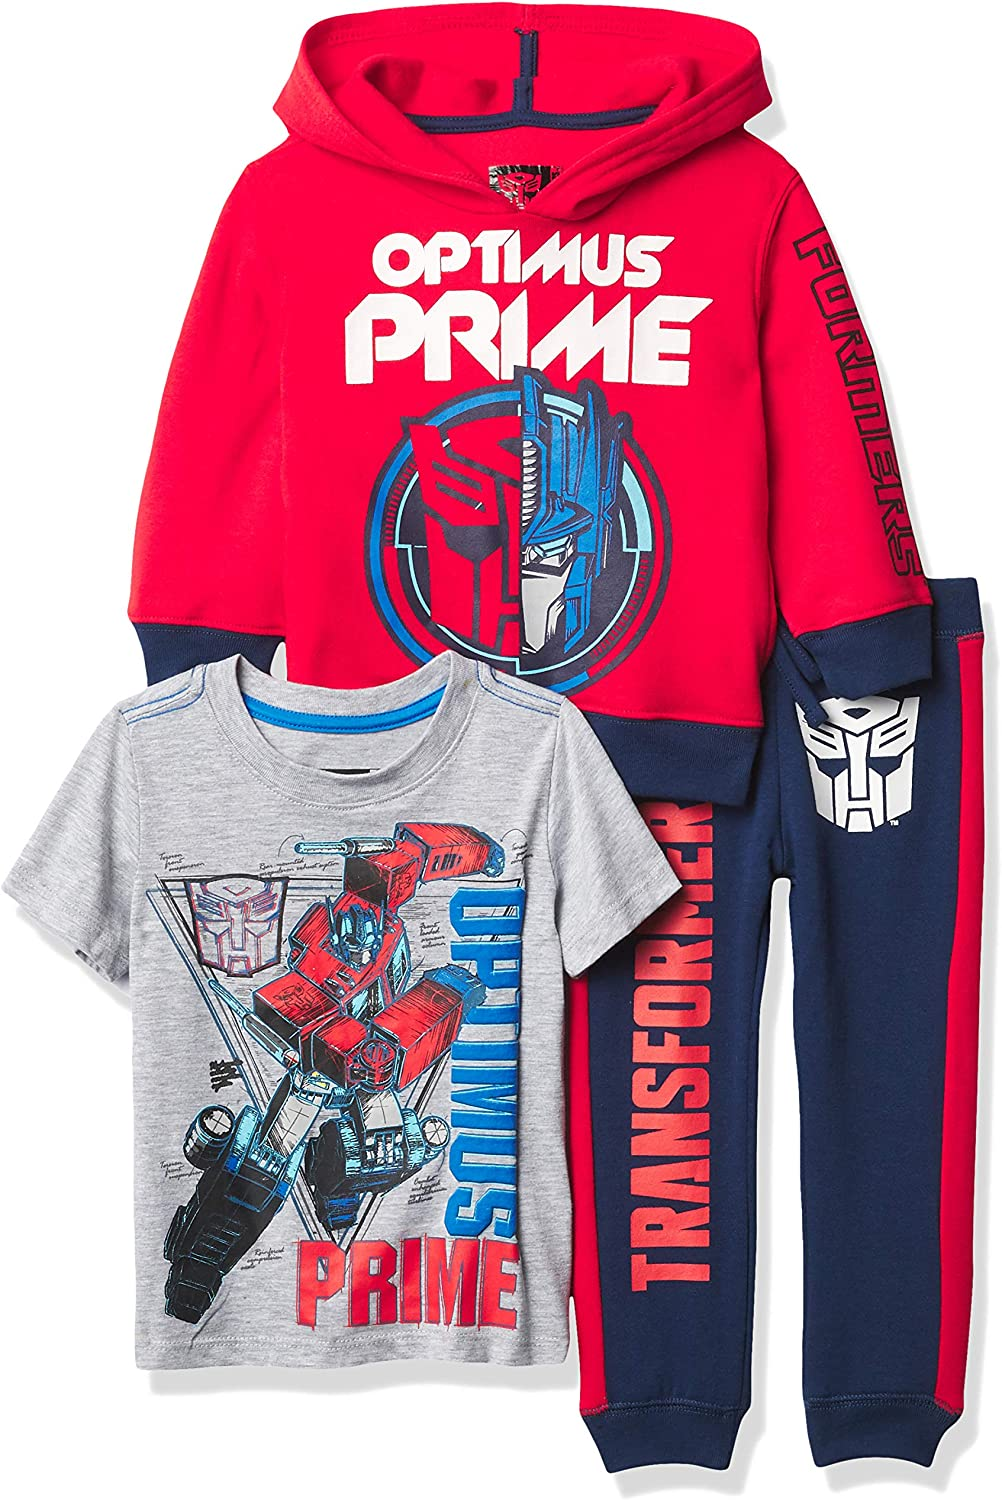 Transformers Graphic Hoodie, T-Shirt, & Jogger Sweatpant, 3-Piece Athleisure Outfit...